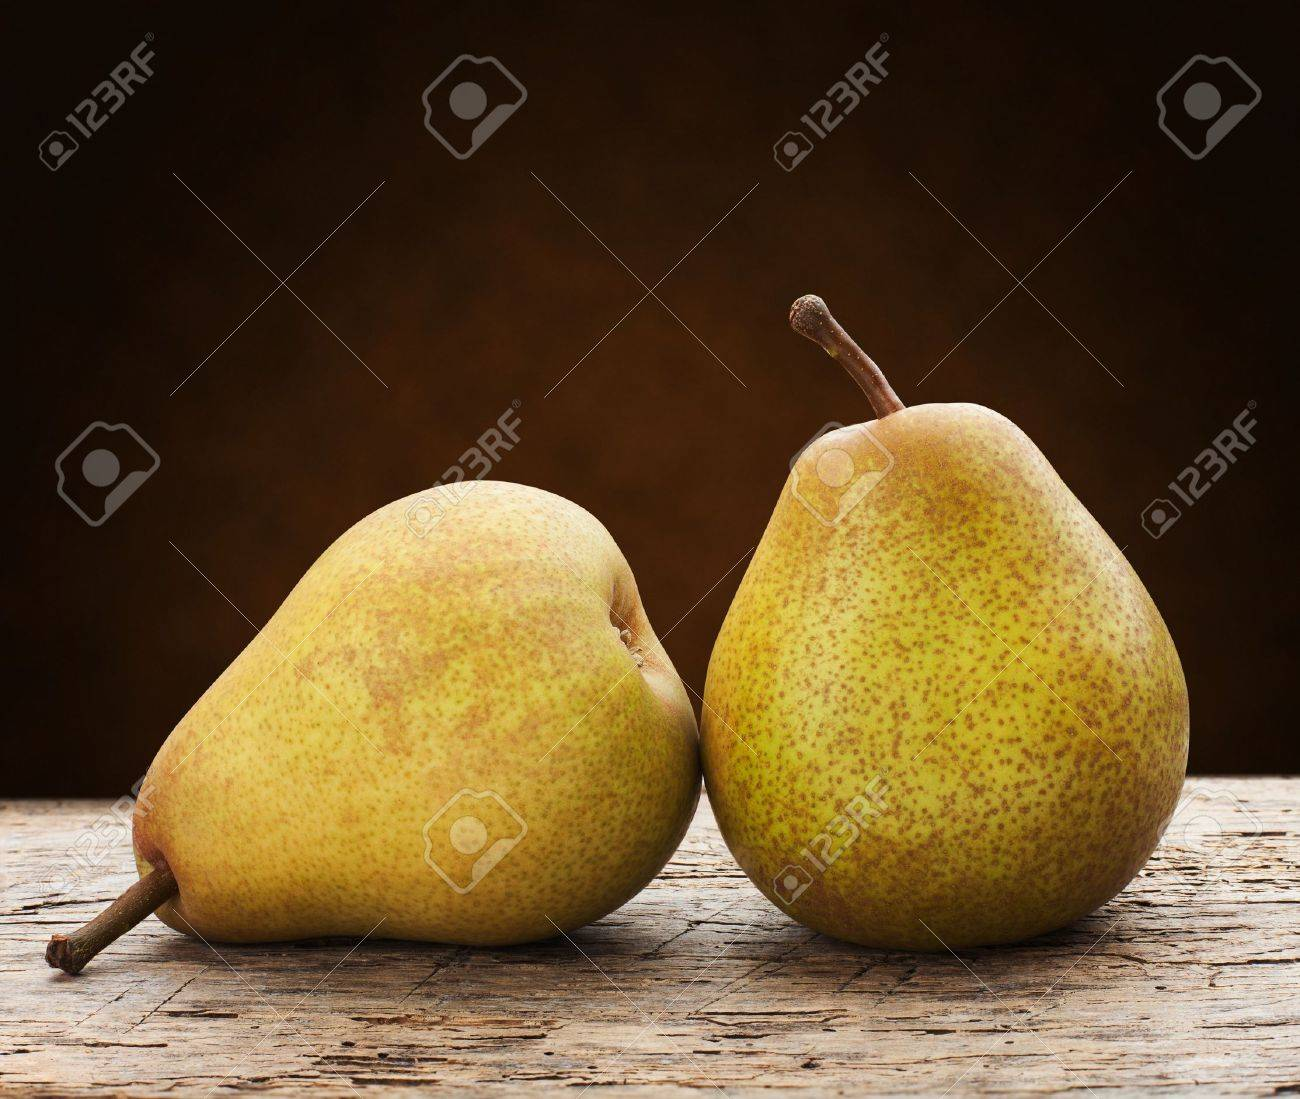 green pears on a wooden table - 18968896